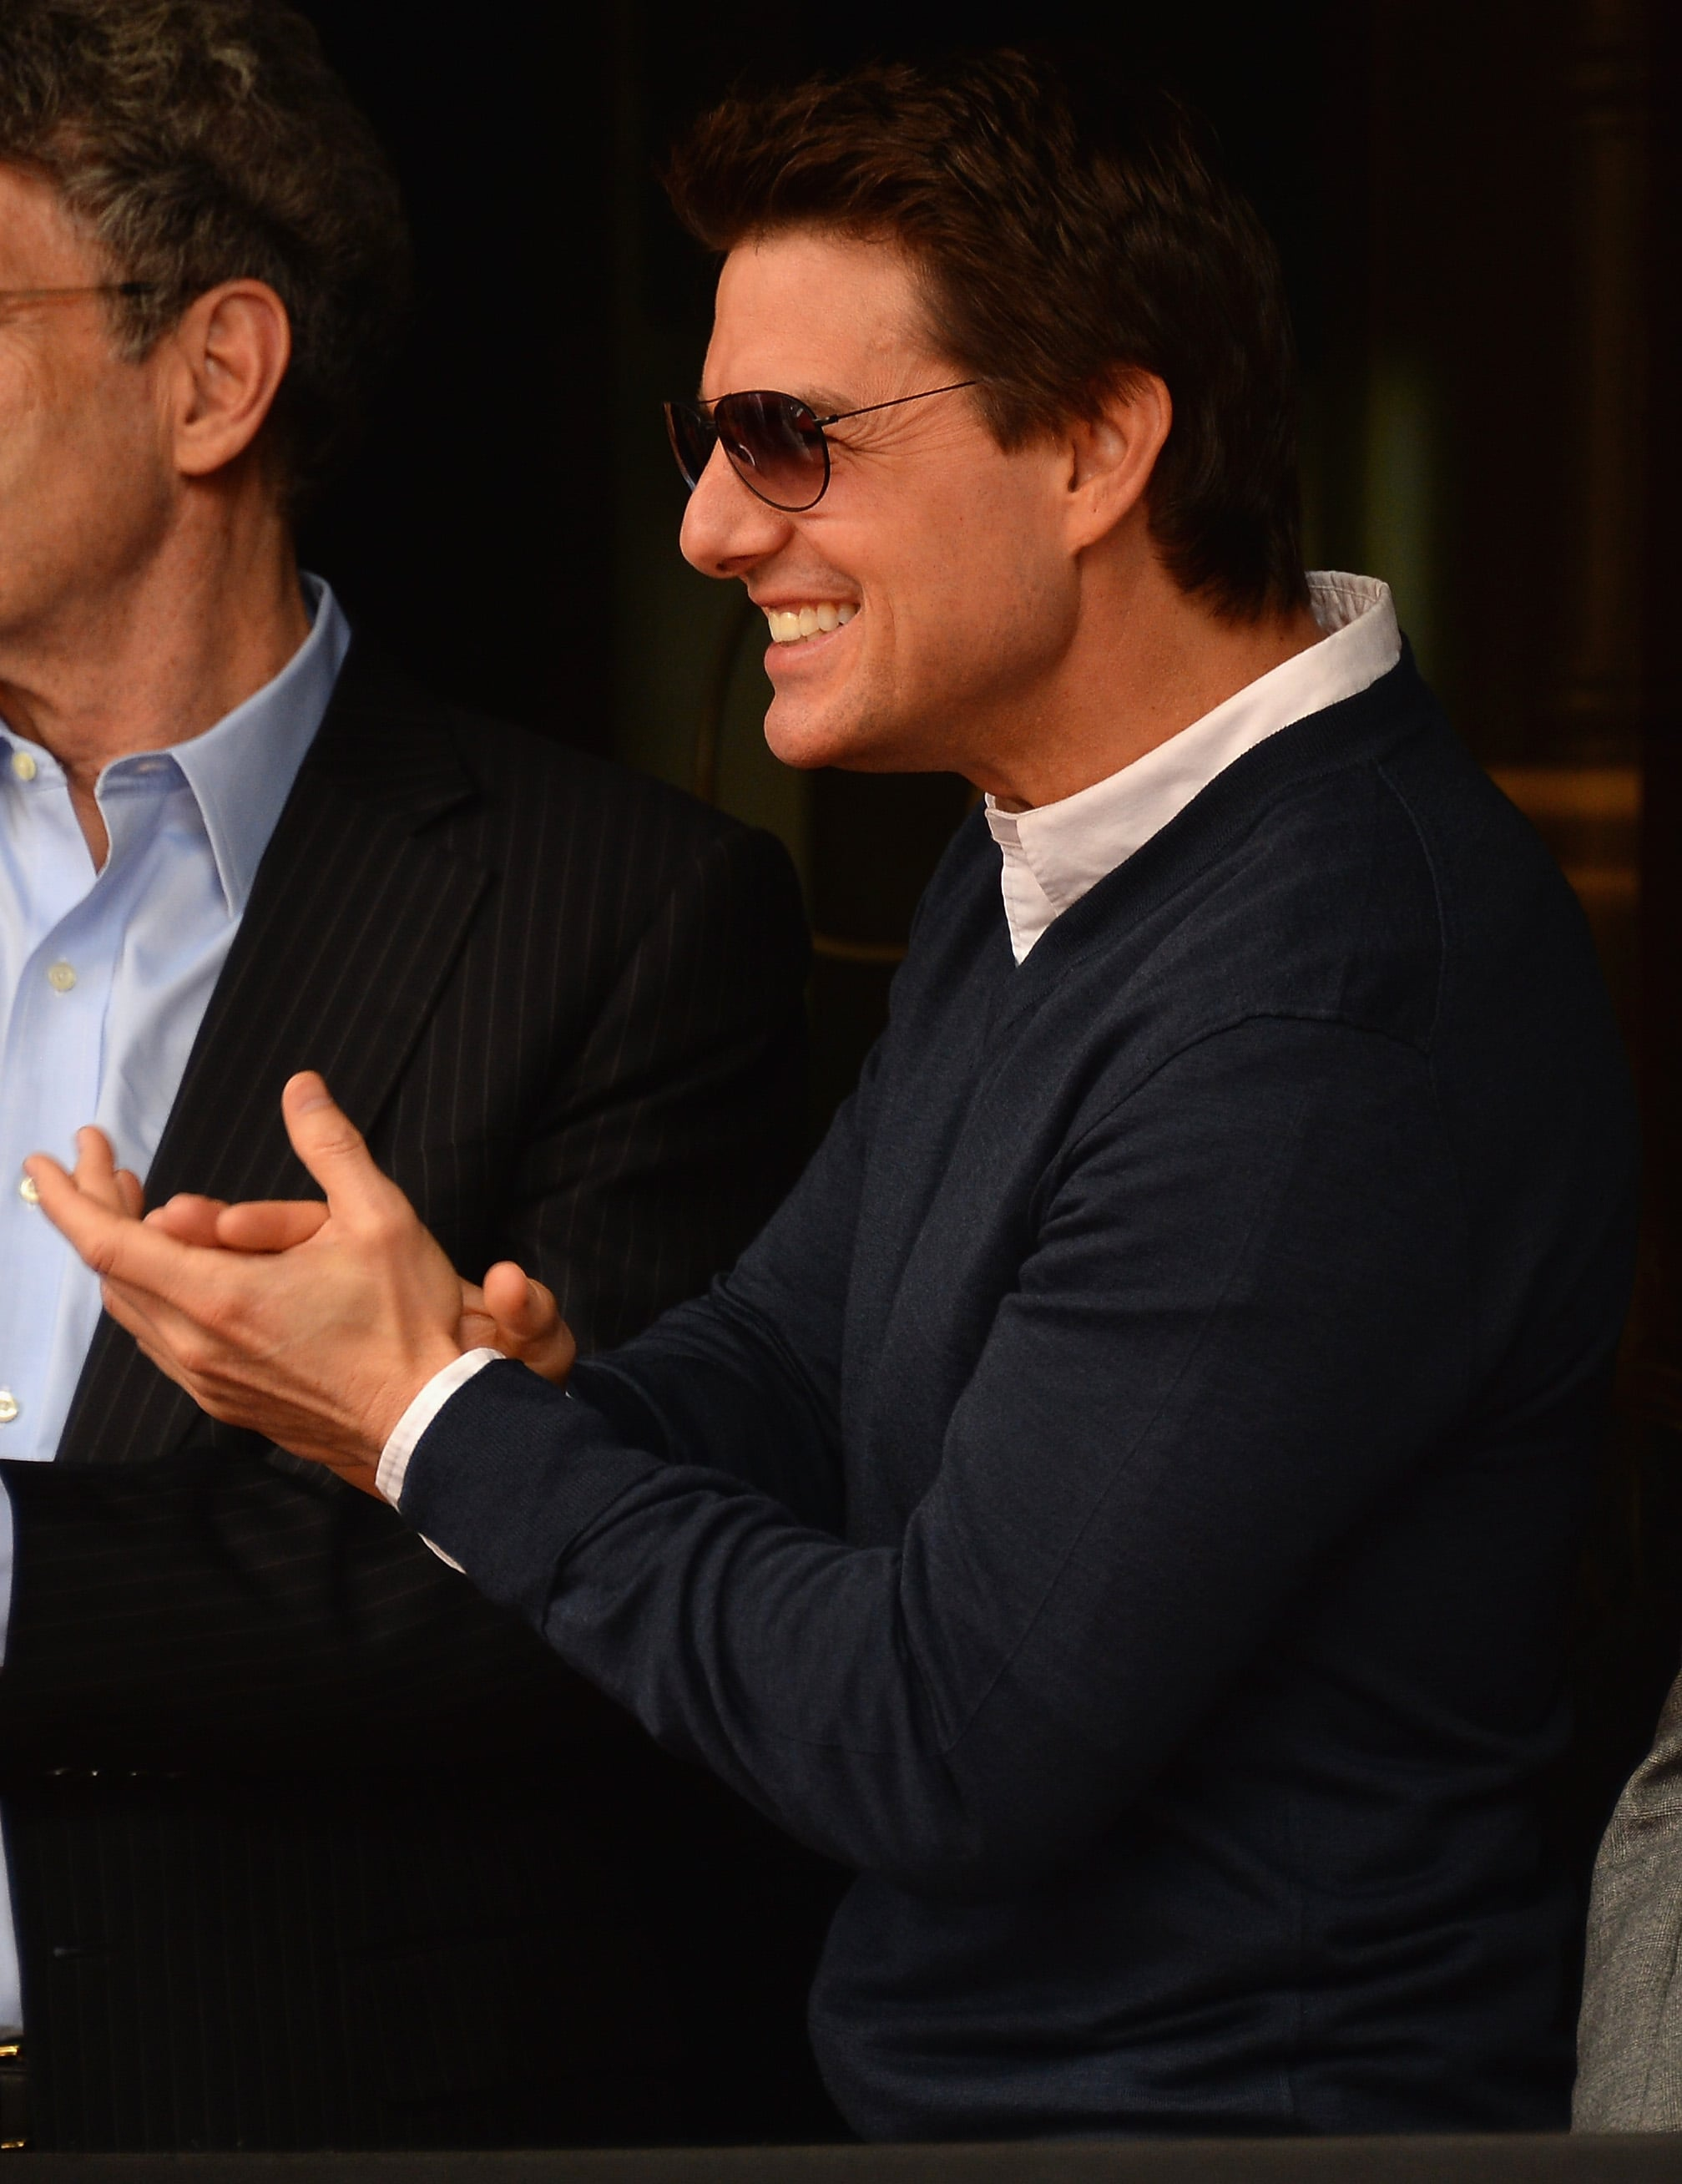 Tom Cruise gave Jerry Bruckheimer a round of applause as he accepted his star on the Hollywood Walk of Fame.